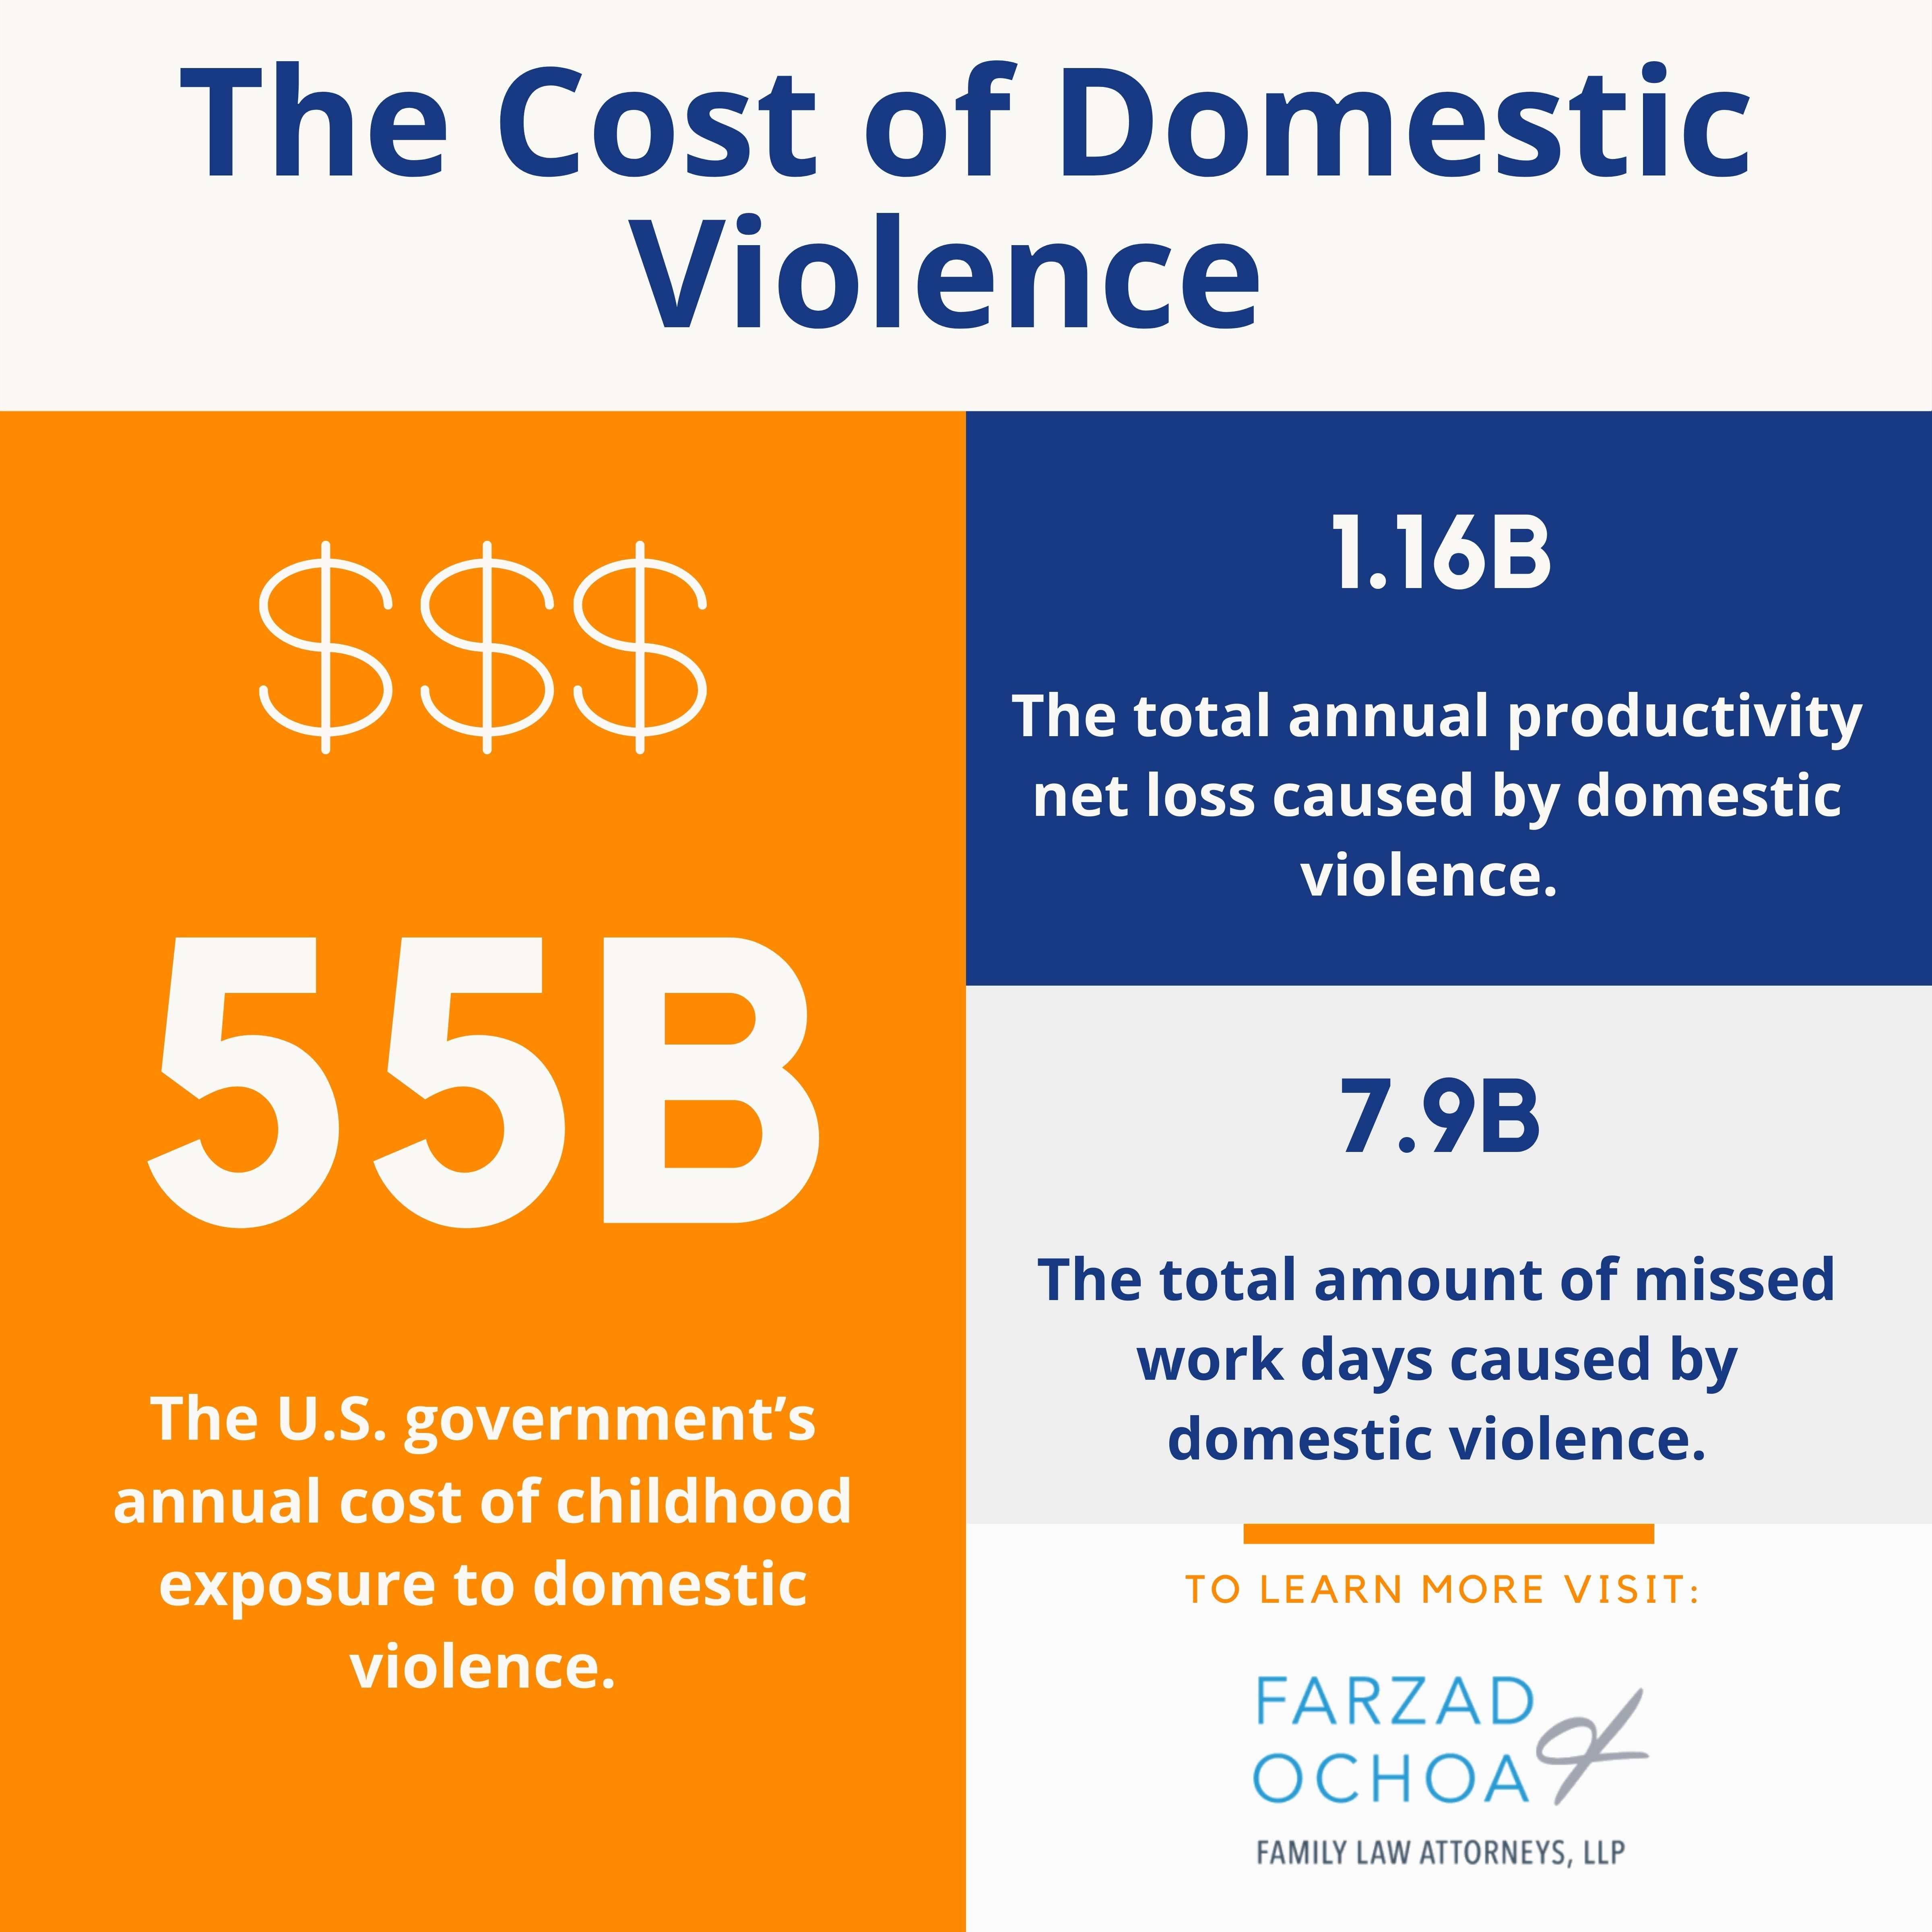 Statistics on the cost of domestic violence to the community